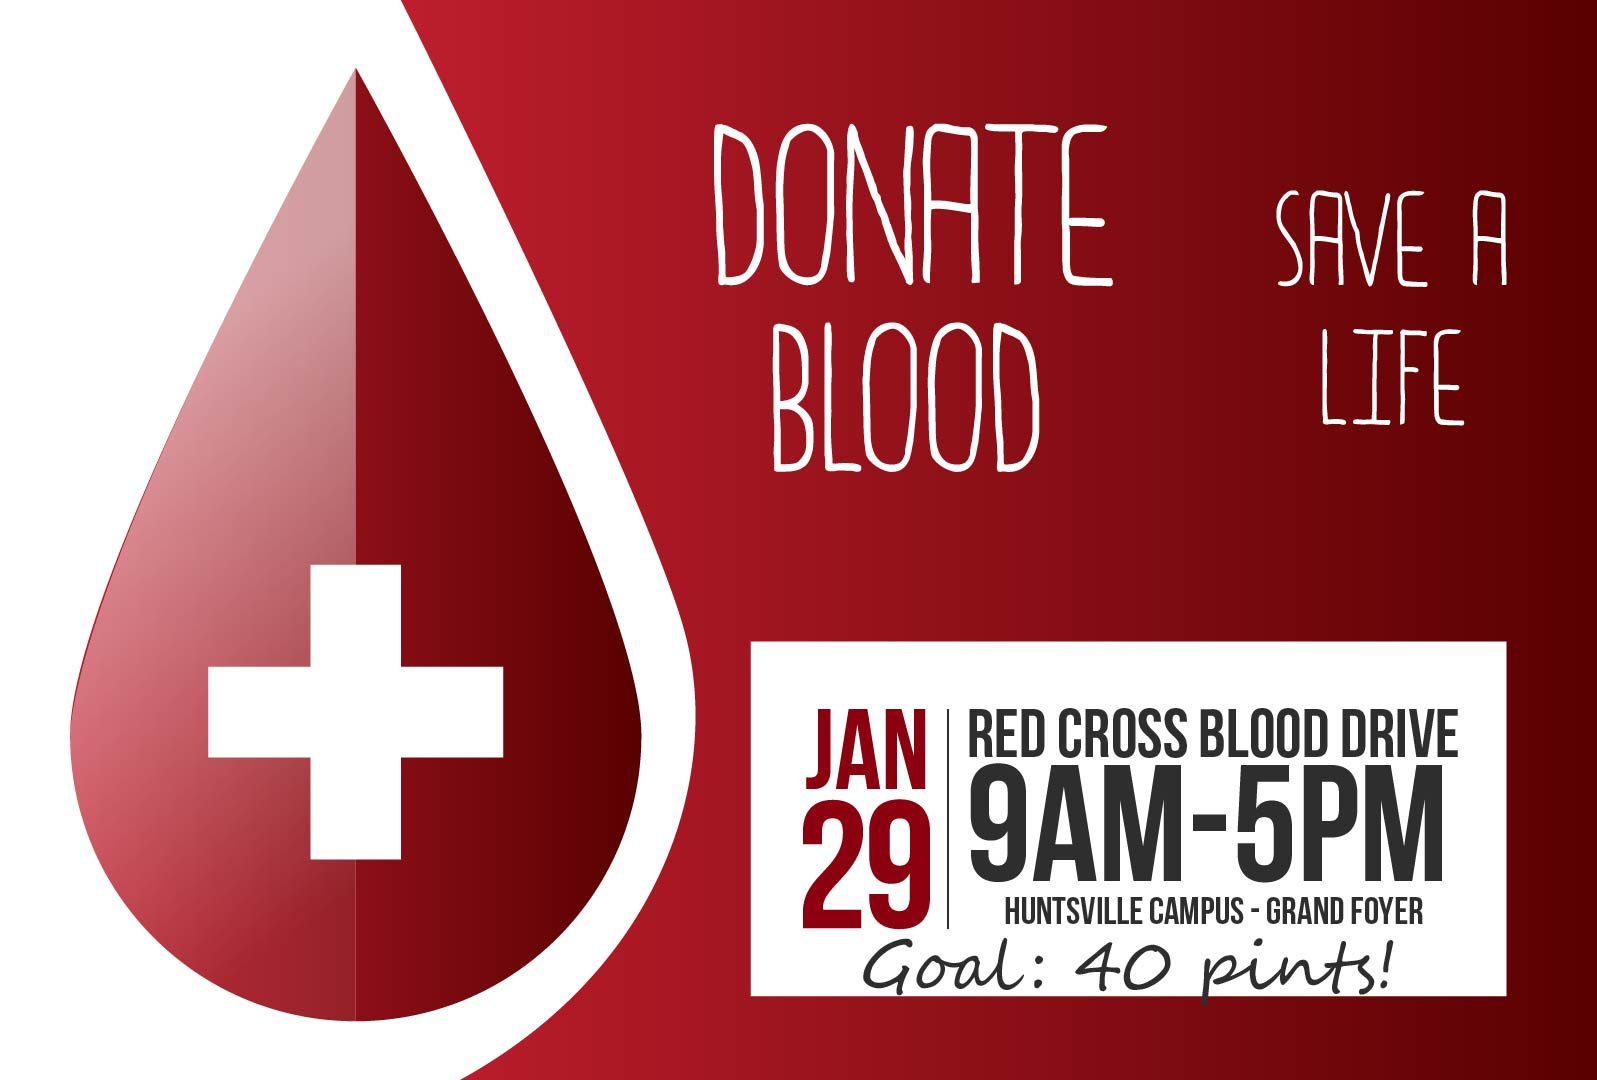 Donate Blood, save a life! Jan 29, red cross blood drive, 9am-5pm. Huntsville Campus, Grand Foyer. Goal: 40 pints!